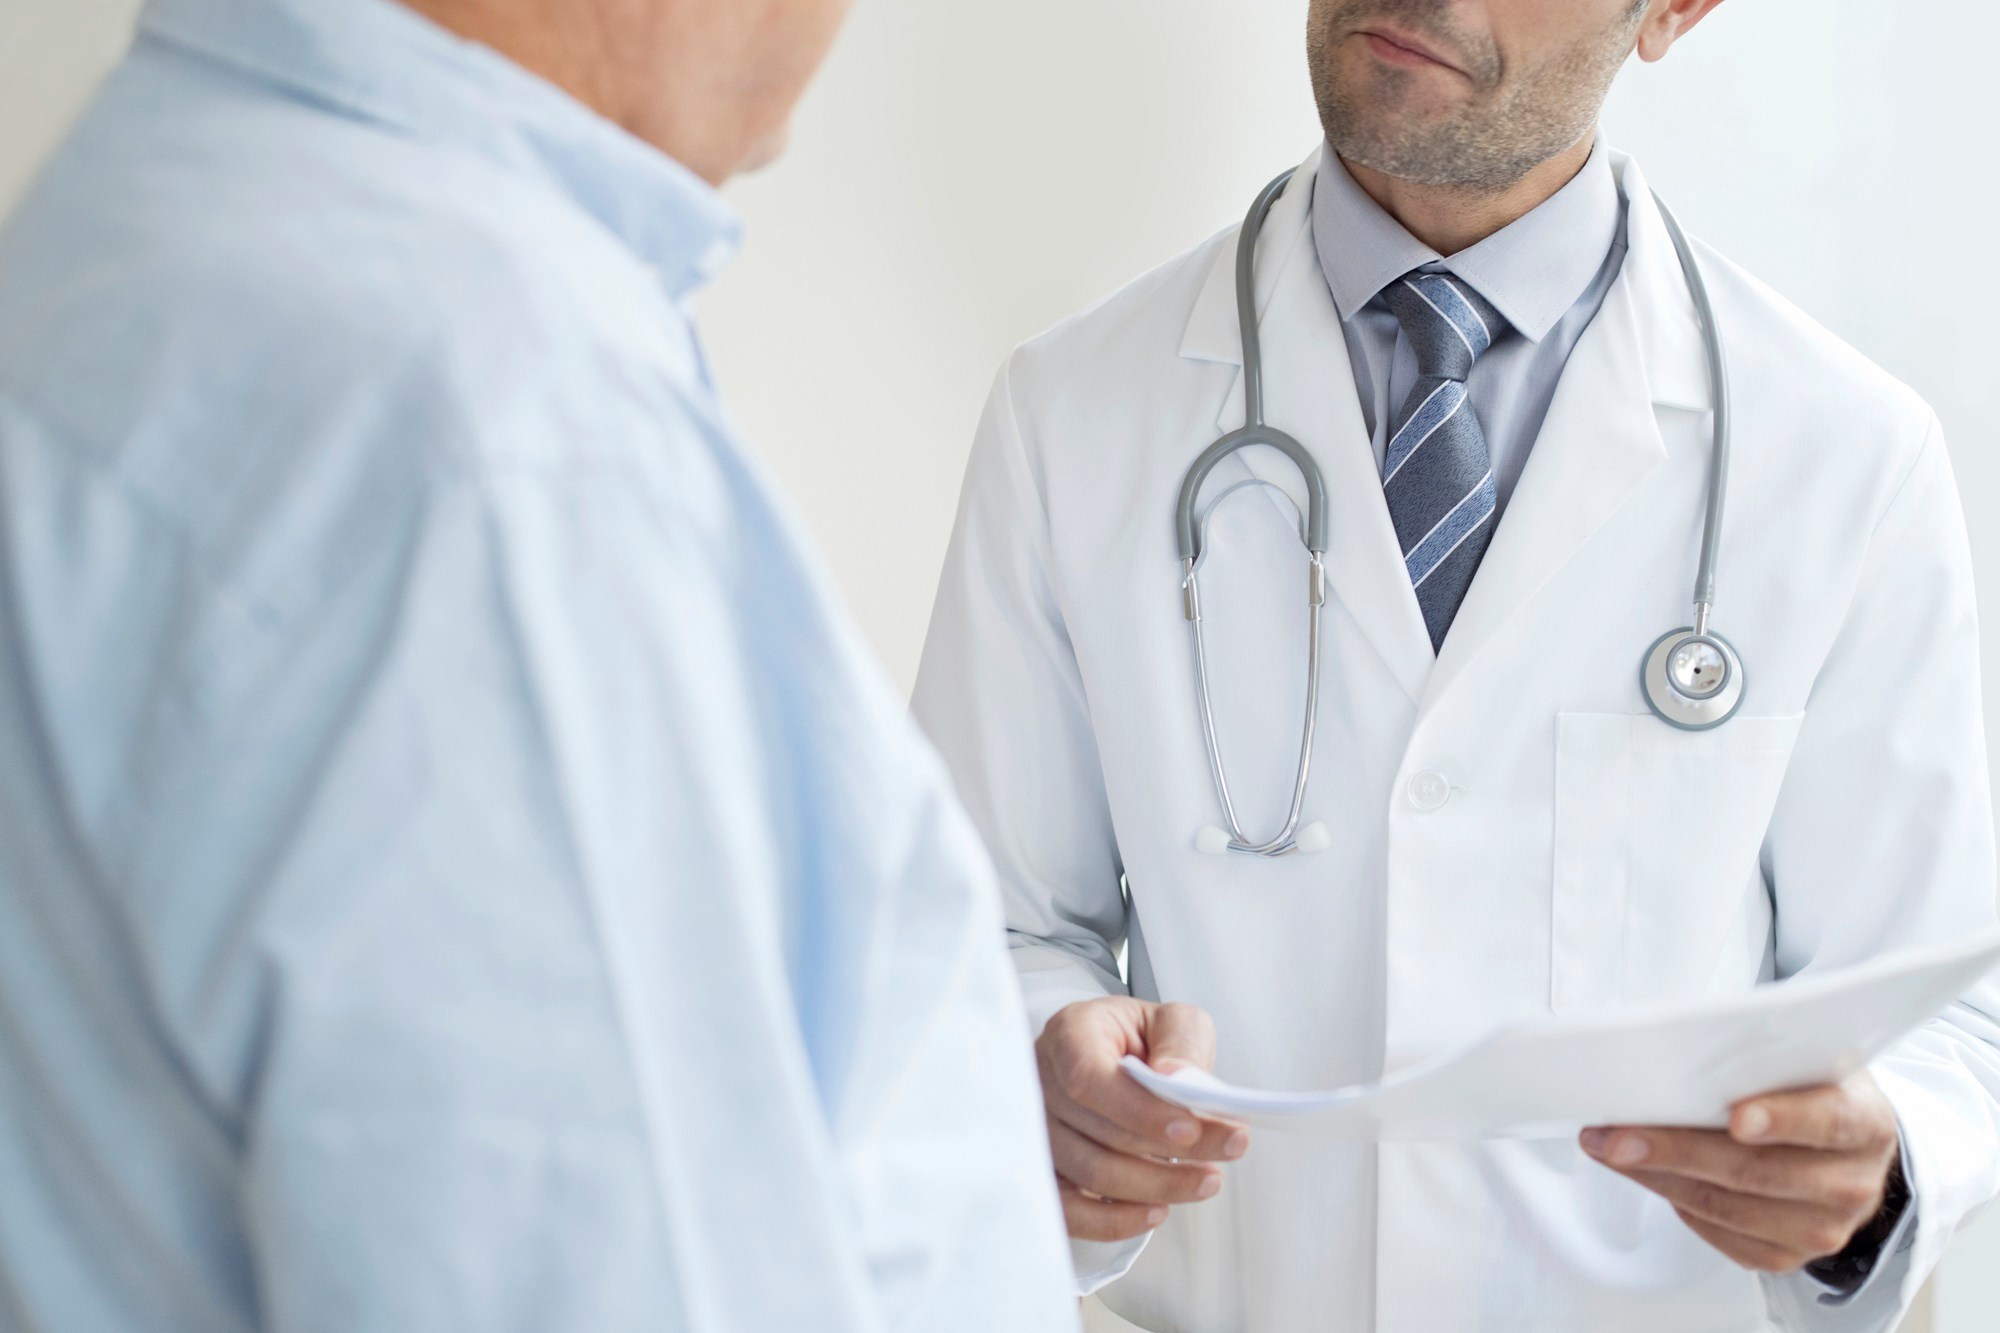 Testosterone Use Remains High Among Men With Coronary Artery Disease